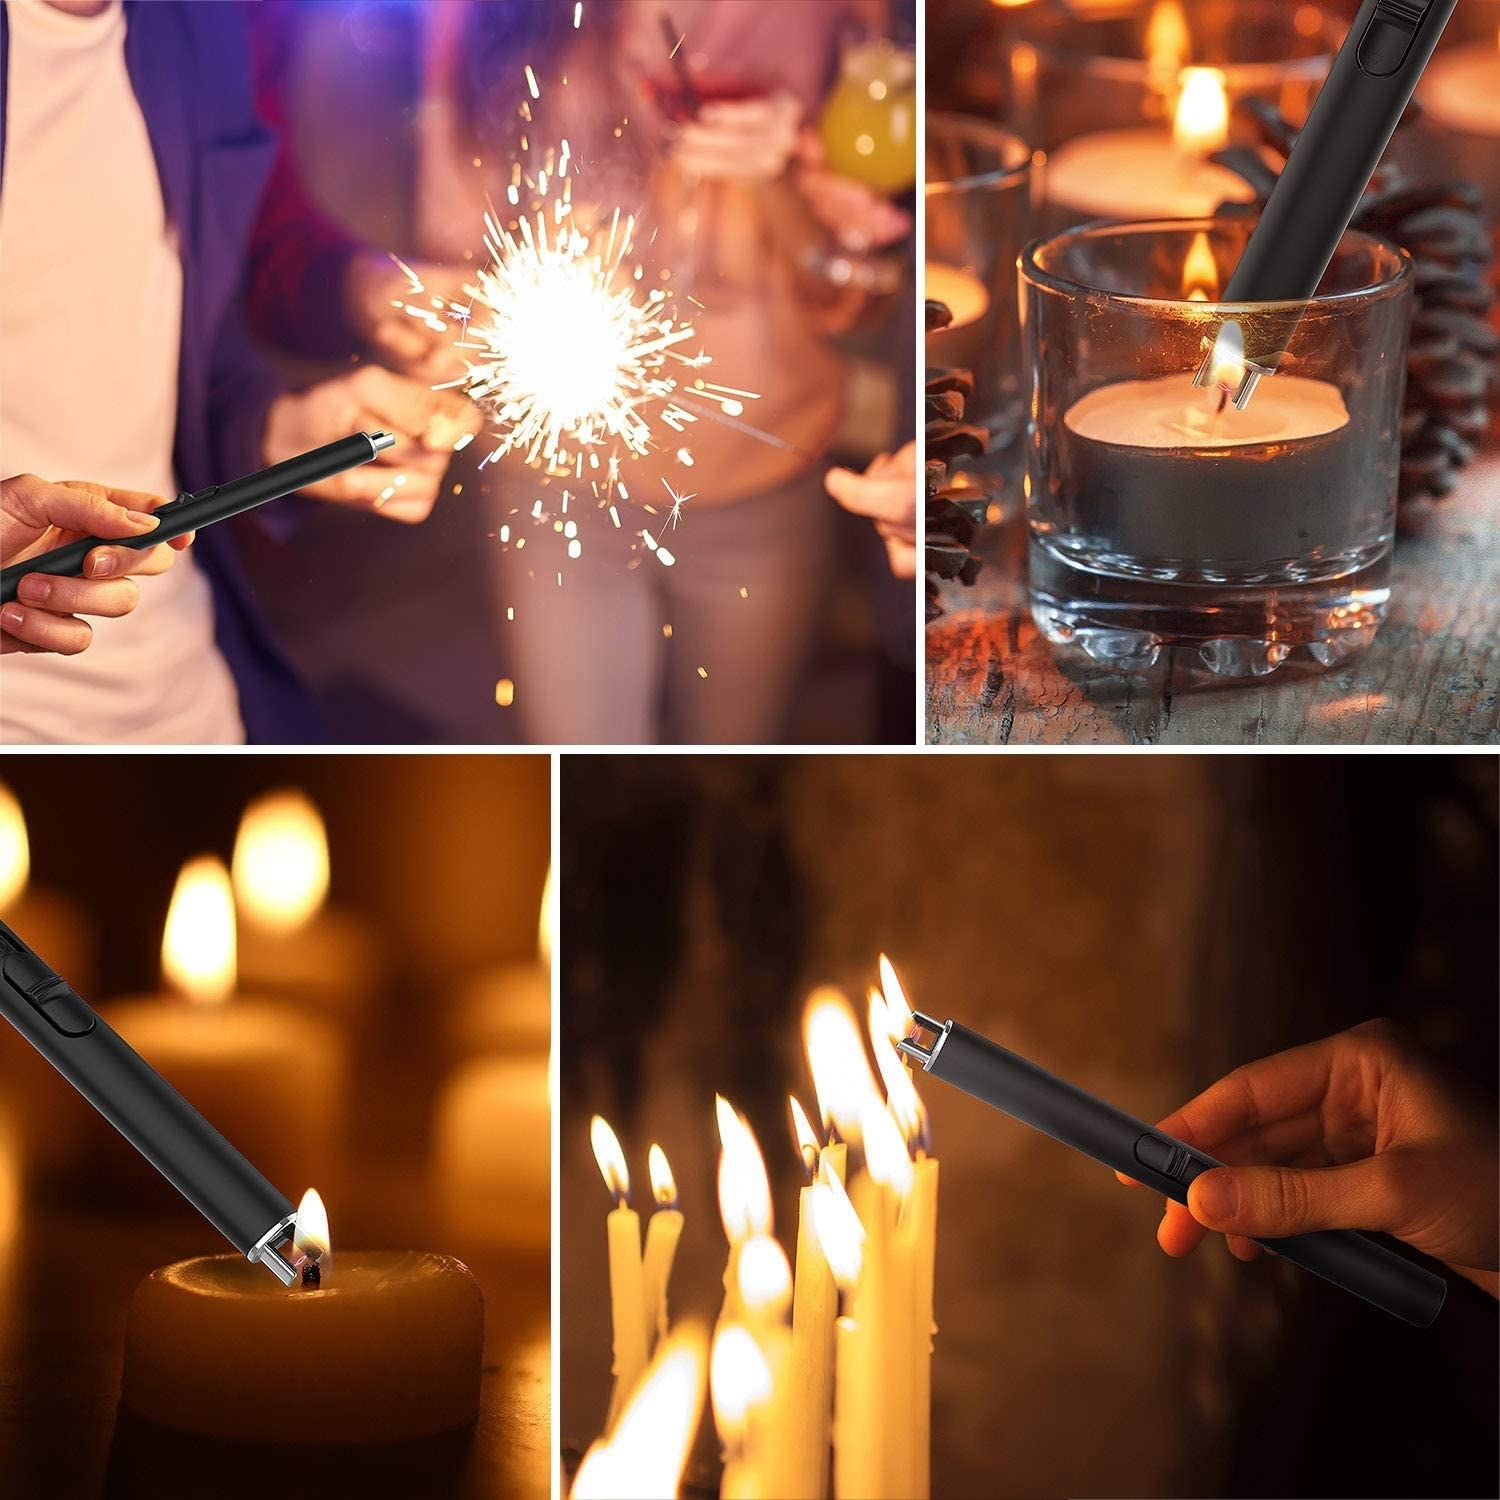 black lighter with electric current used to light candles and sparklers